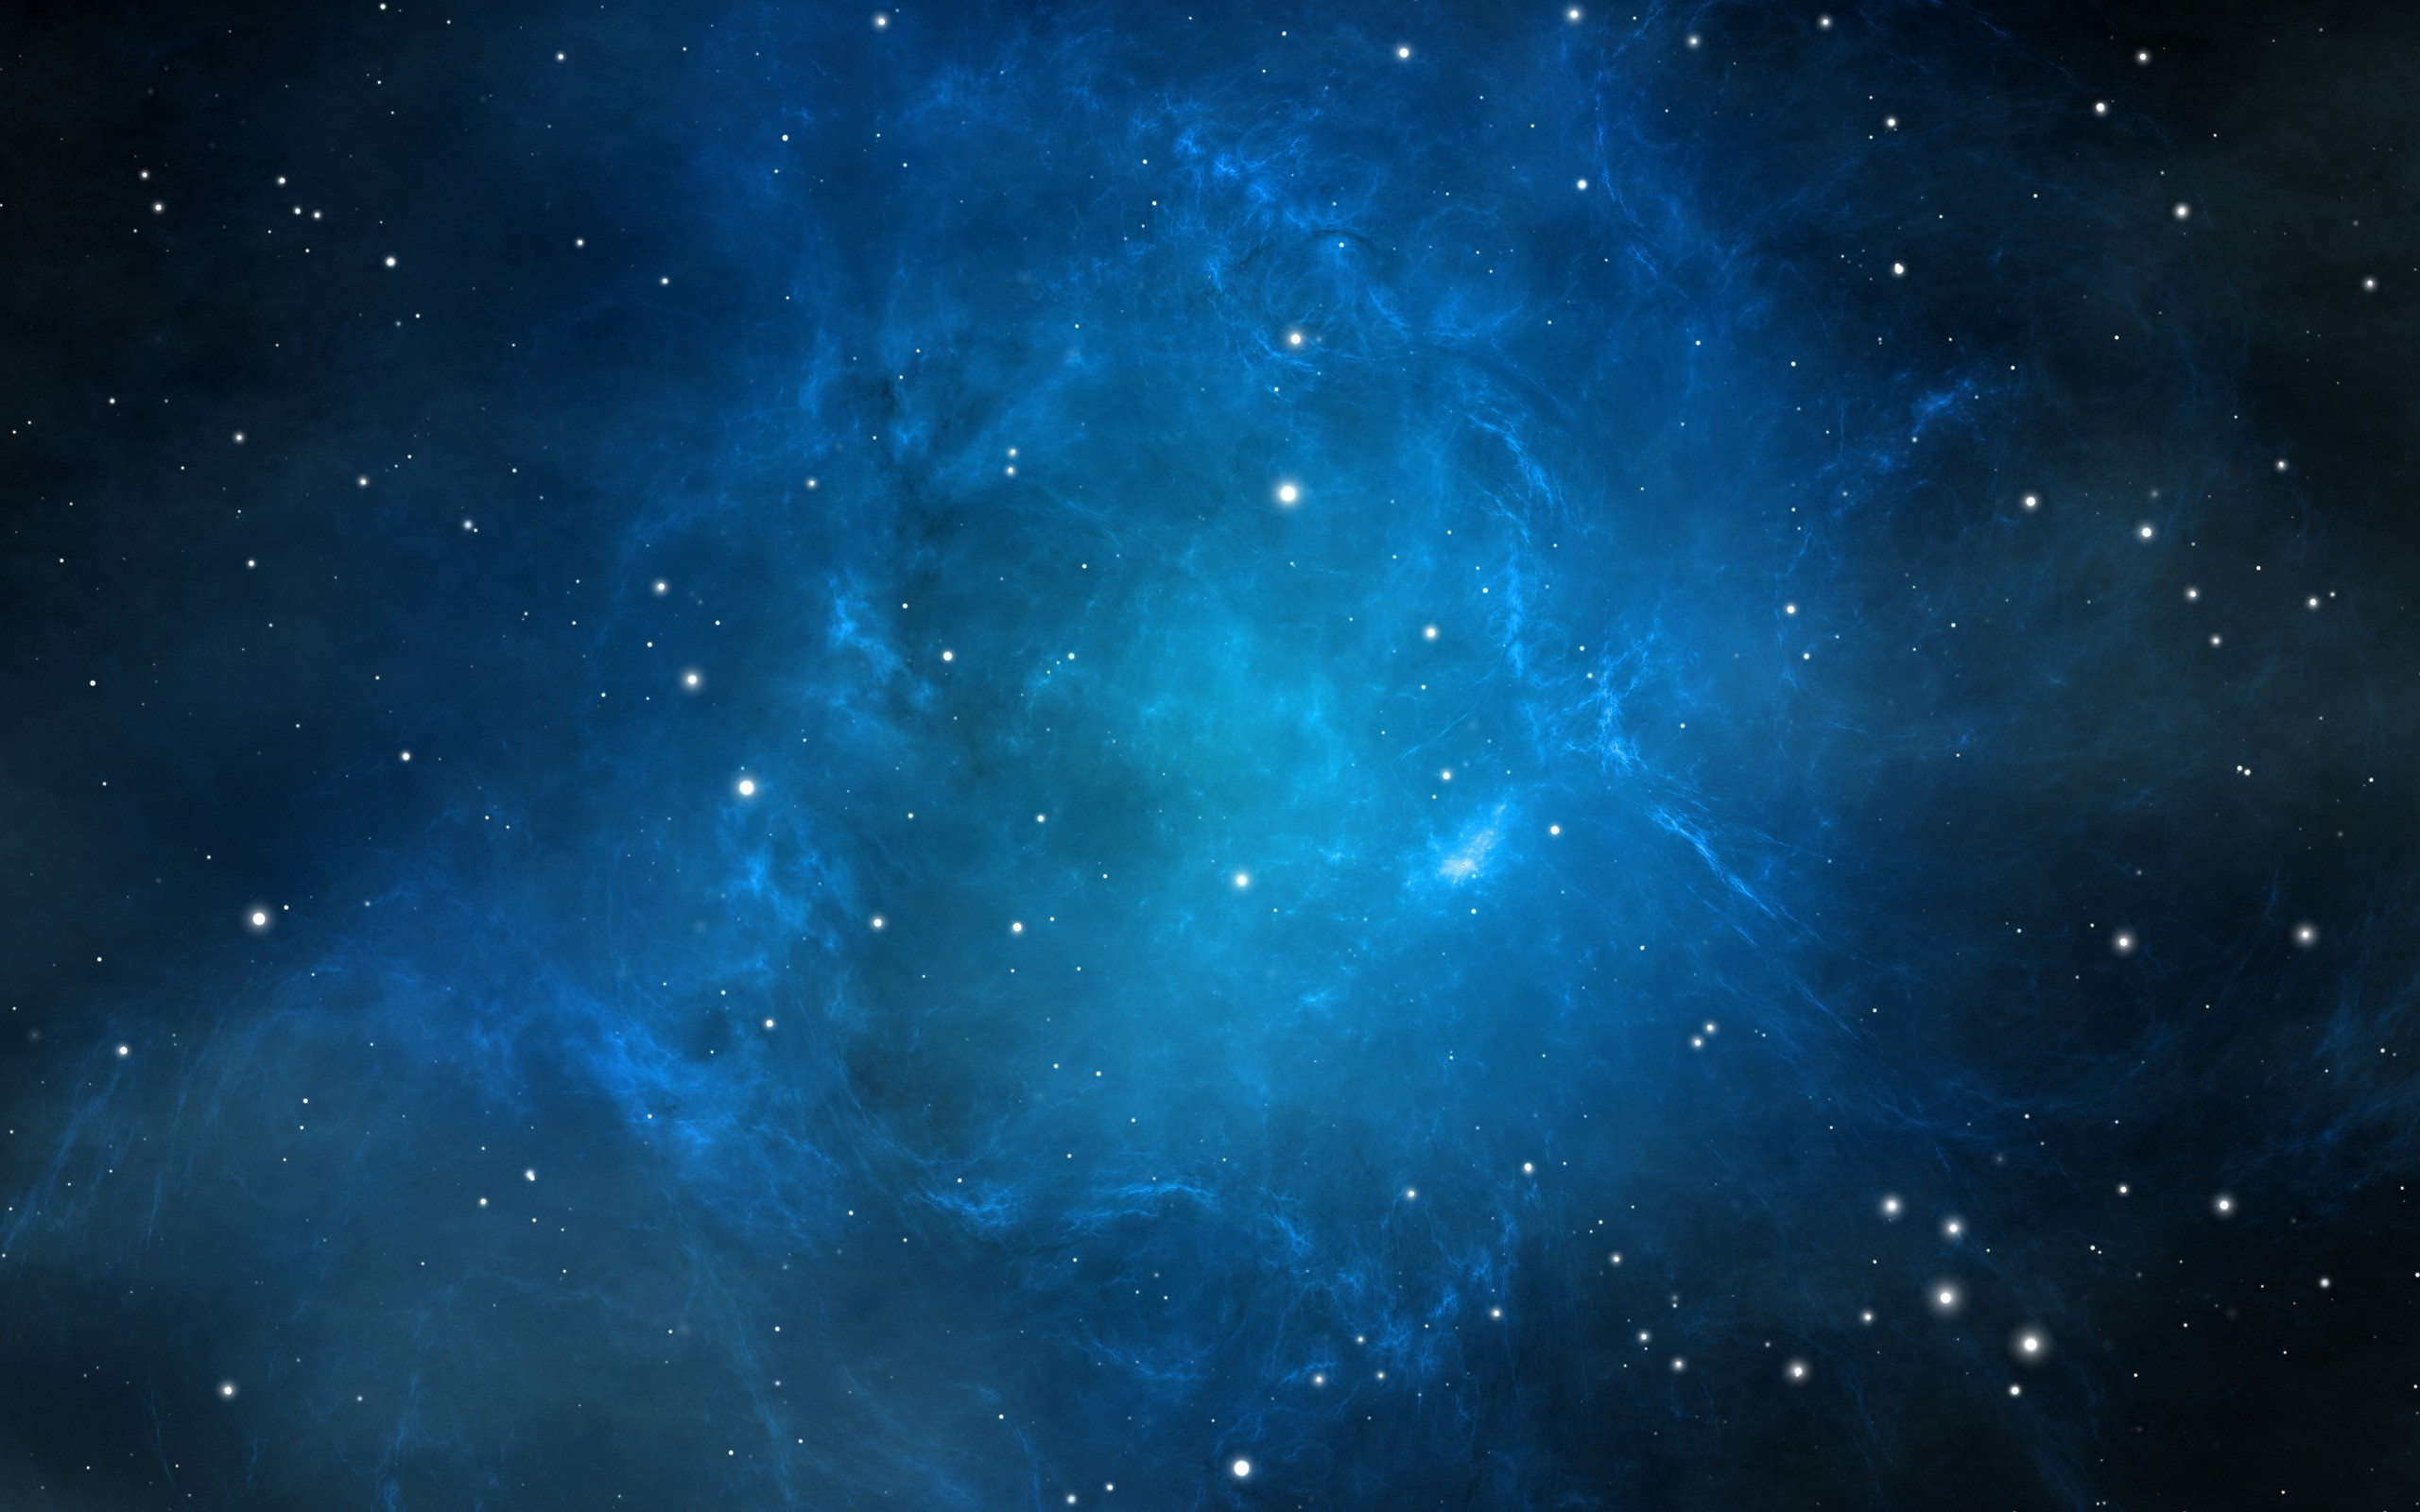 Space Stars Background Download Free High Resolution